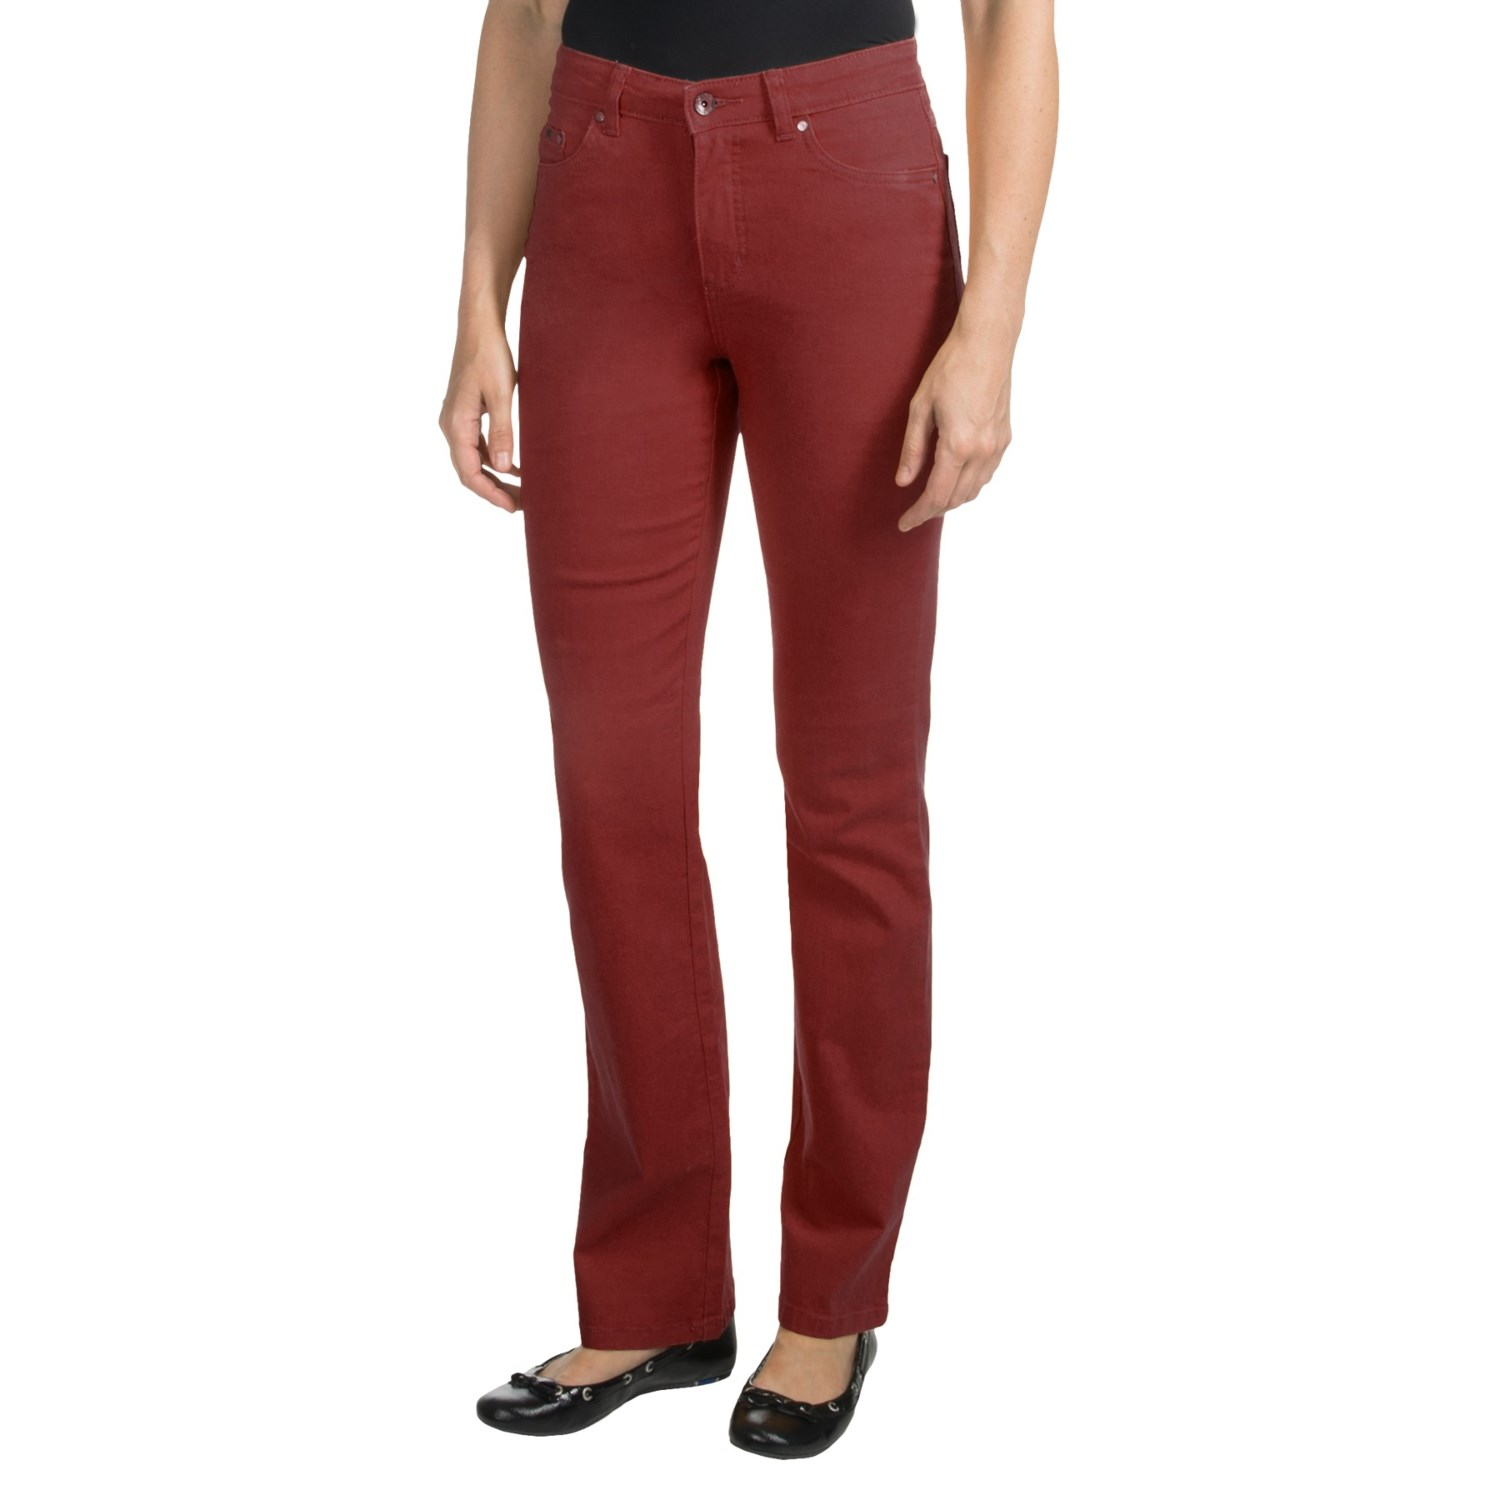 Find your perfect fit from this women's jeans collection. Wardrobe essentials include ladies straight leg, bootcut, flared and skinny neo-craft.gq pick your style, cut and colour in just a few clicks.